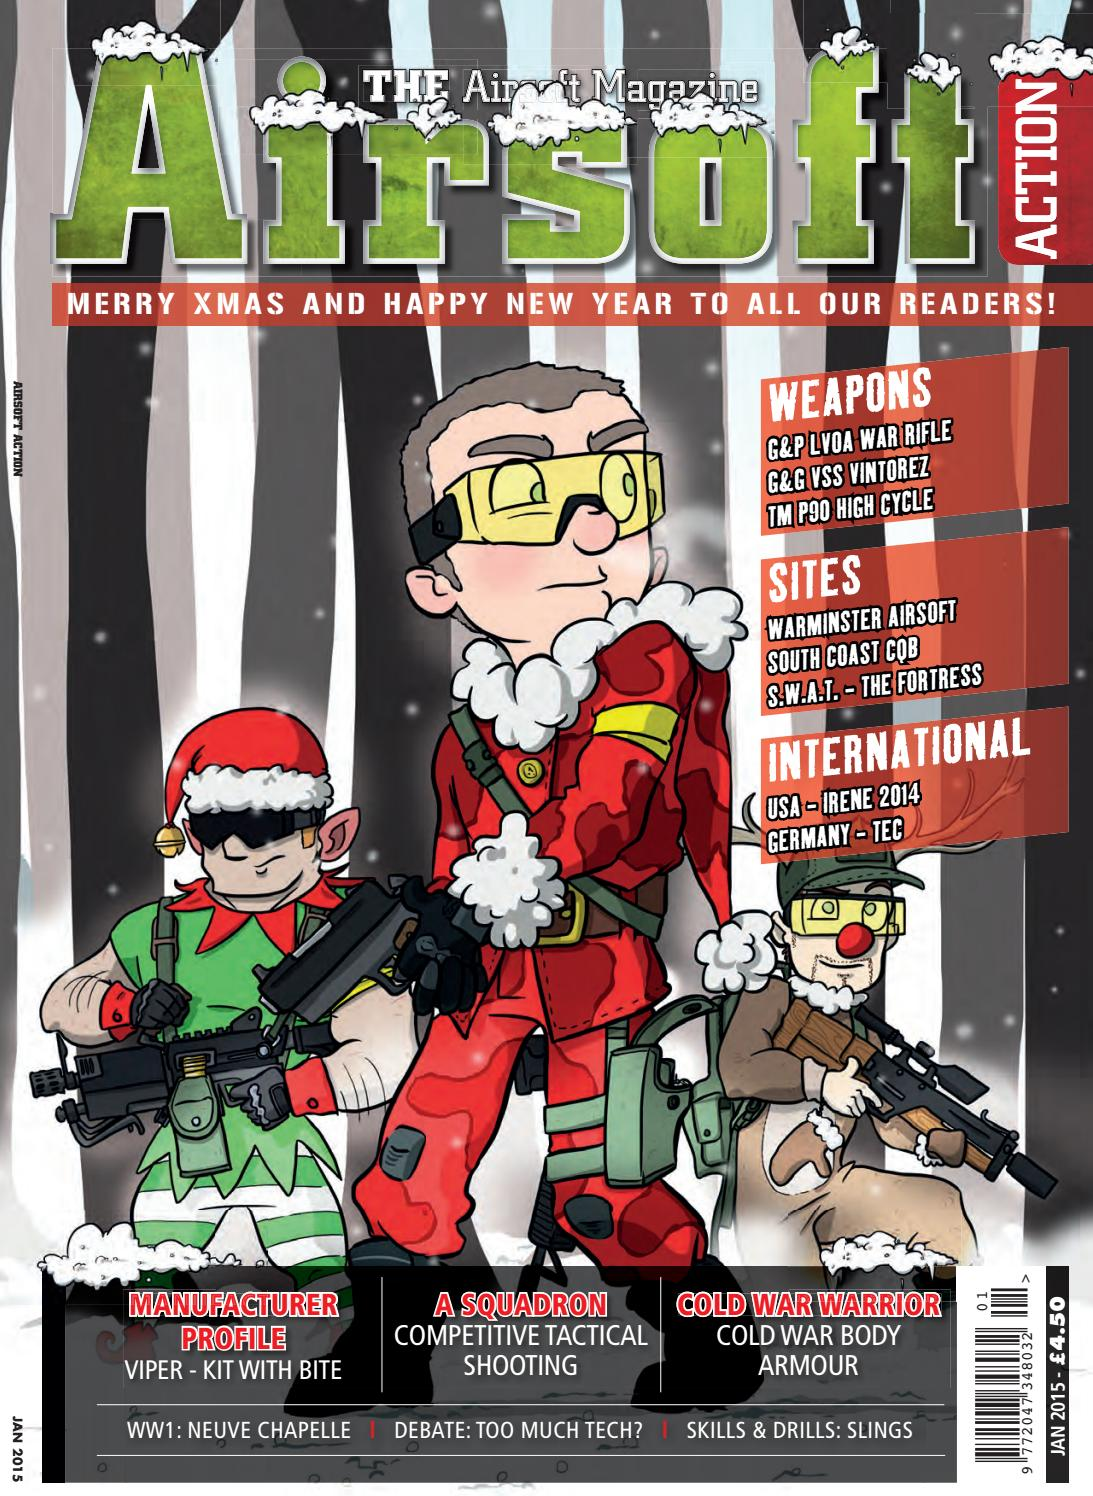 eaacefbd269 Issue 44 - January 2015 by Airsoft Action Magazine - issuu